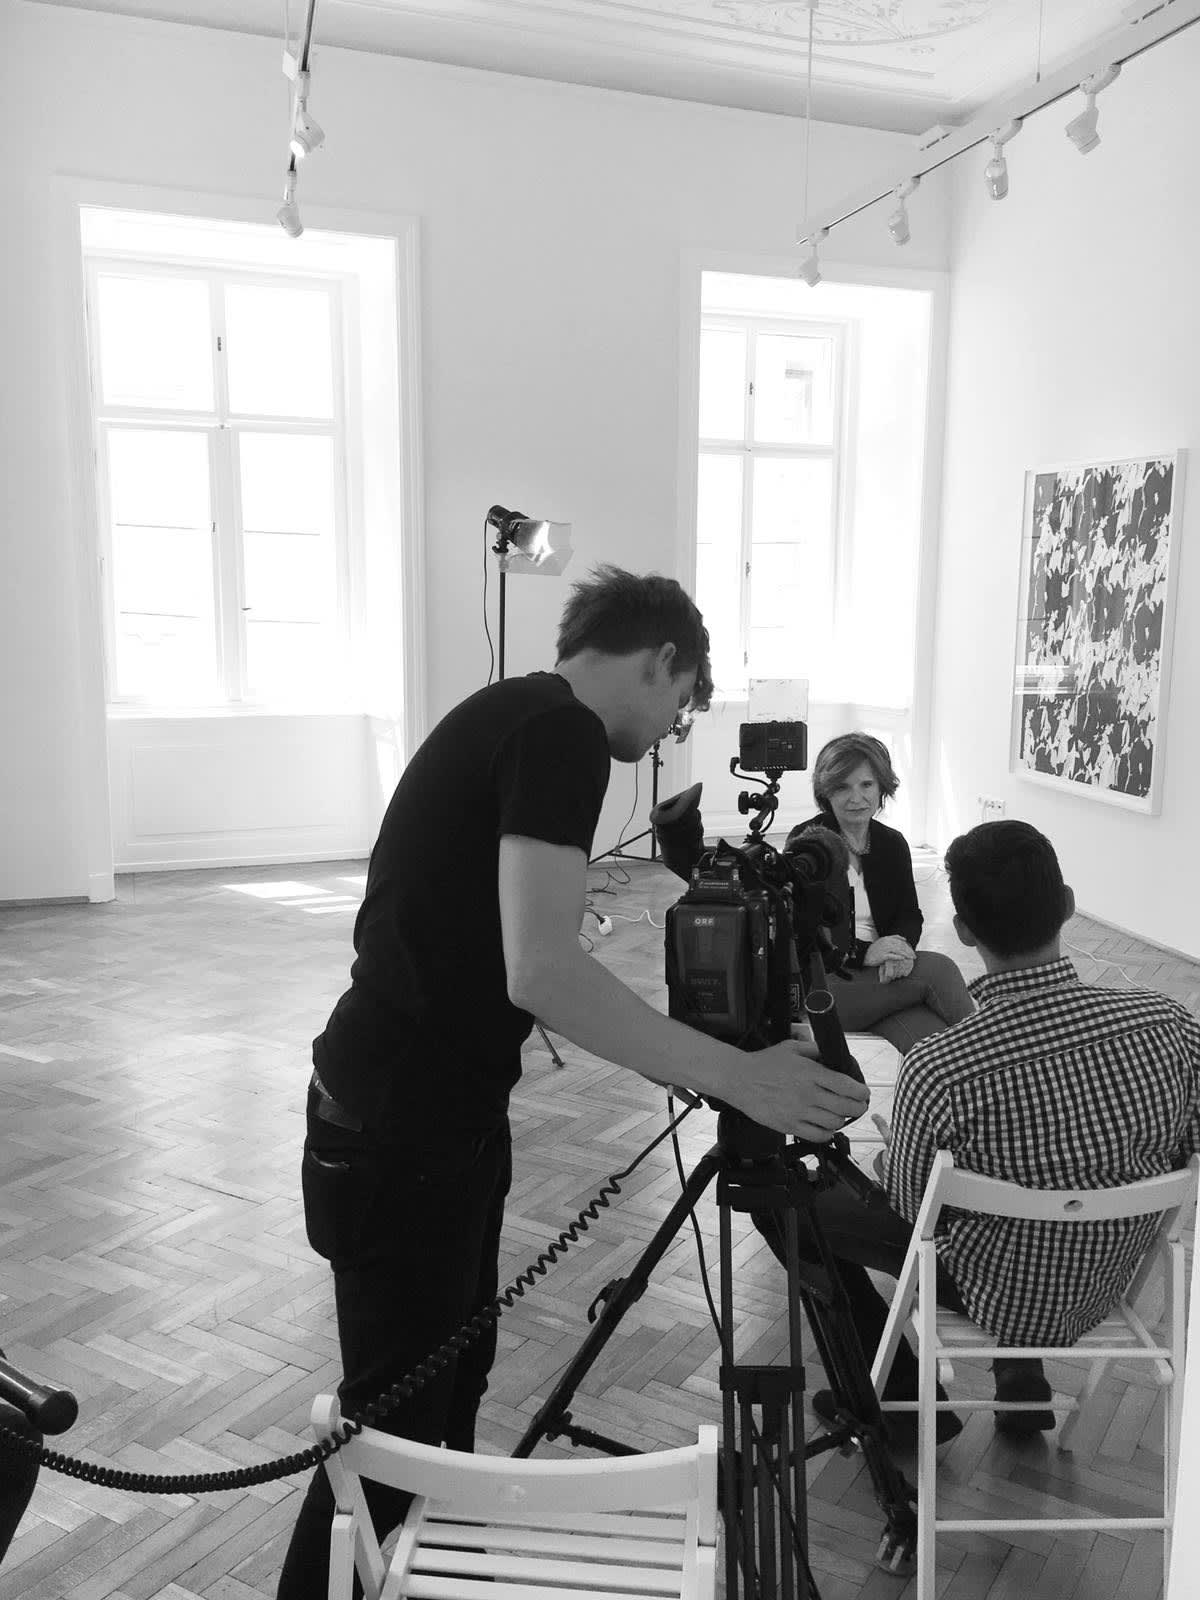 Dr. Edit Schlaffer being interviewd by ORF on the topic of violent extremism in B.LA's Artspace & WwB's Headquarters.